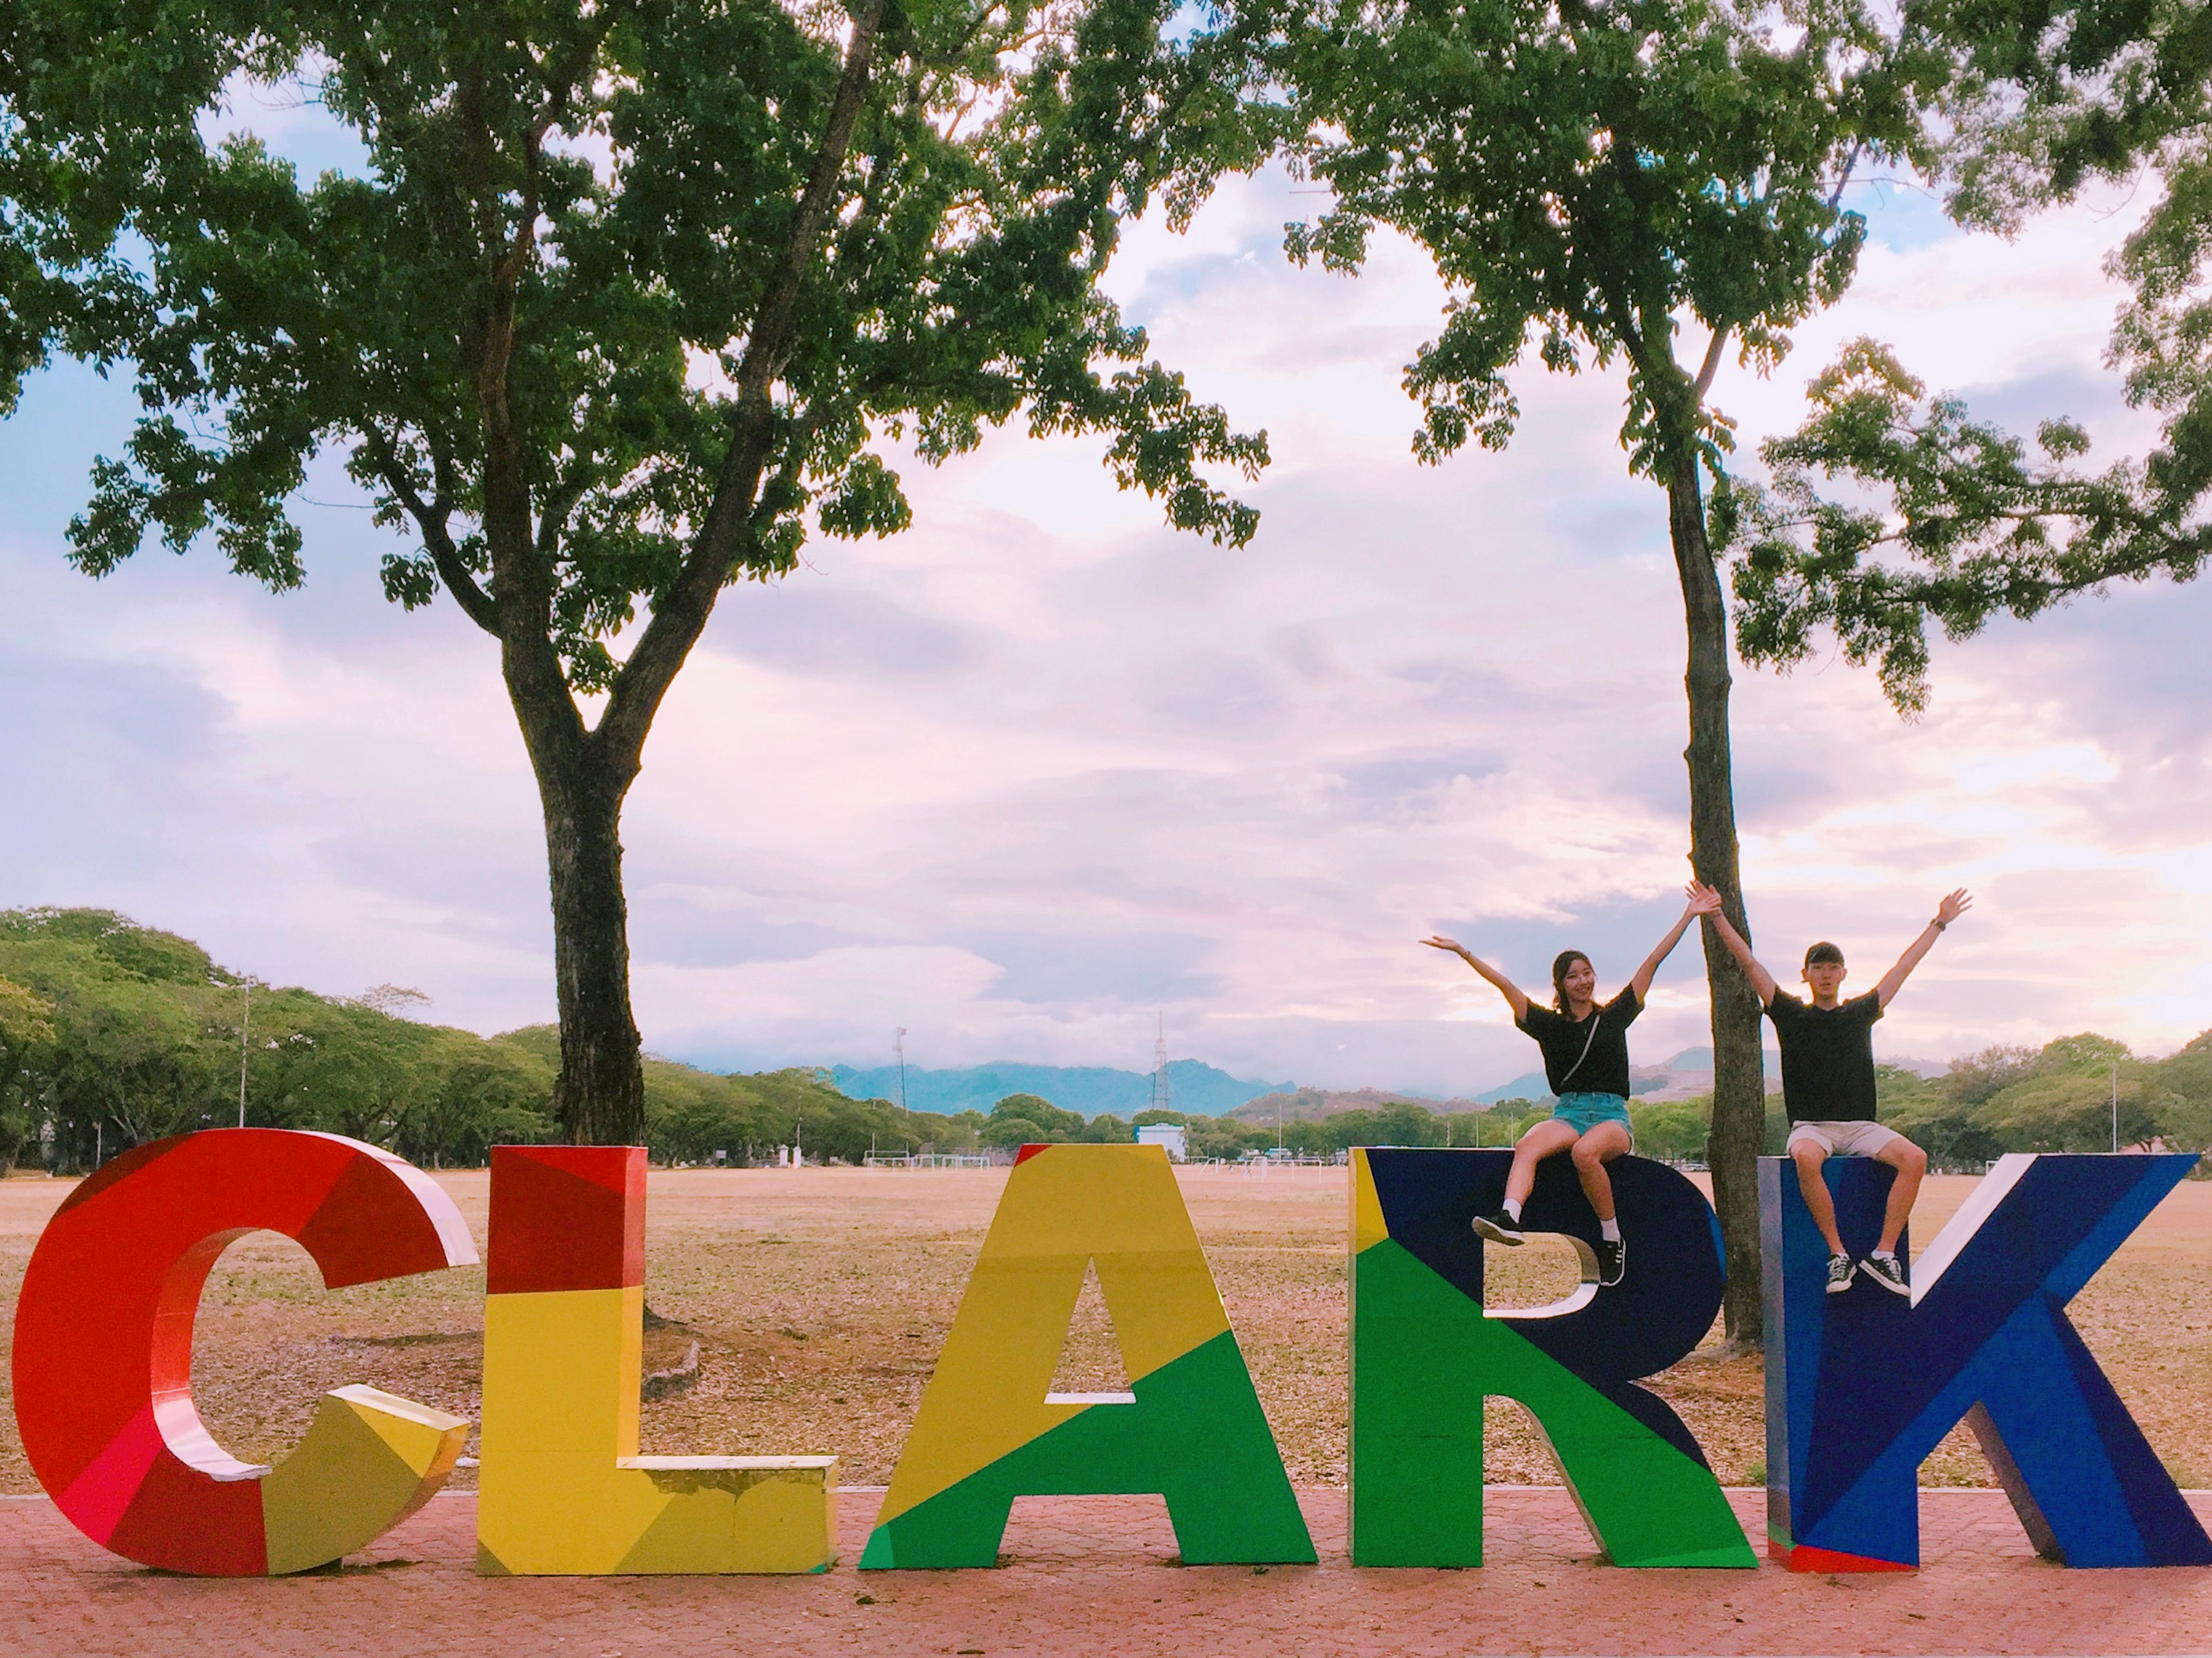 Welcome to Clark Pampanga! :-)